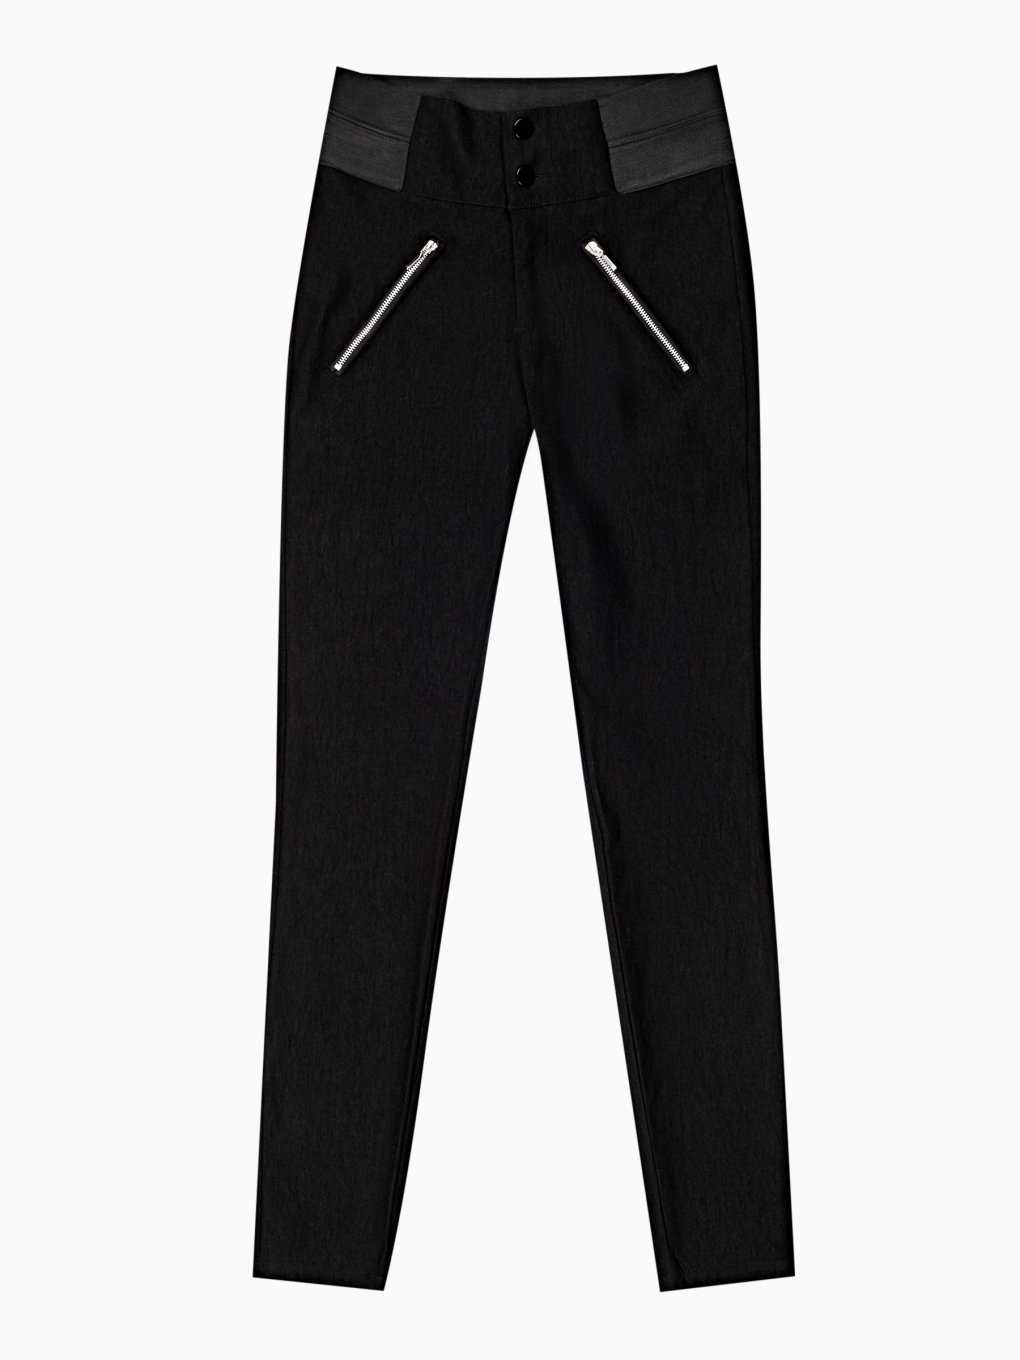 Stretch skinny high-waist trousers